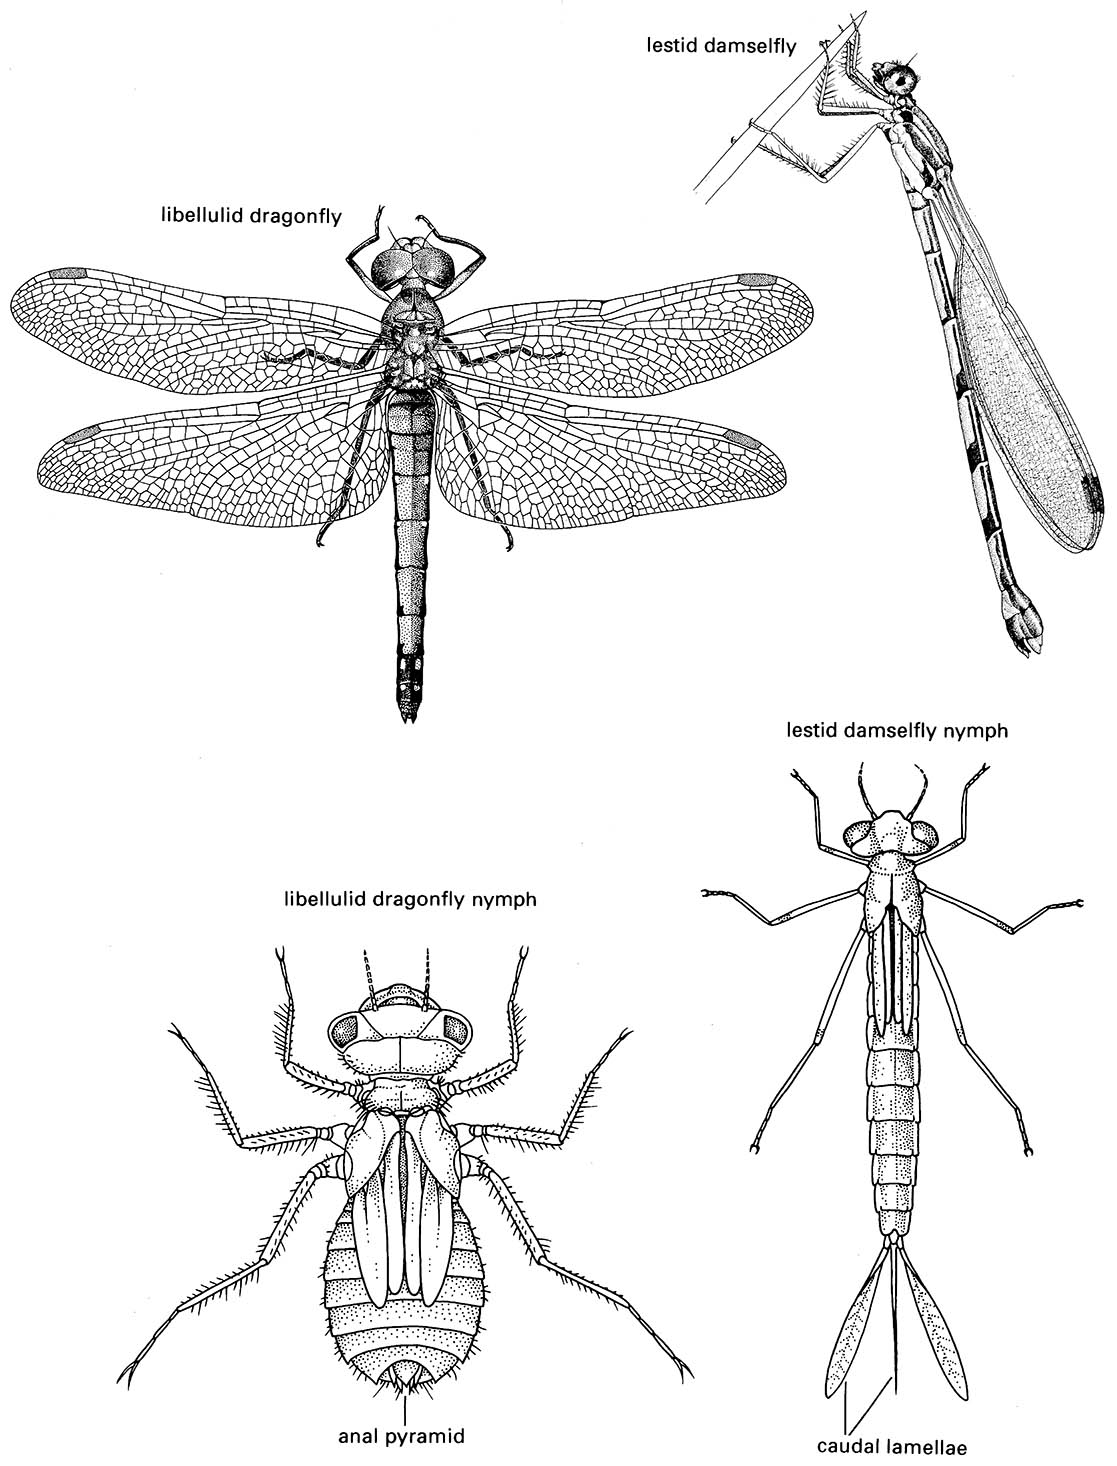 Odonata (damselflies and dragonflies)